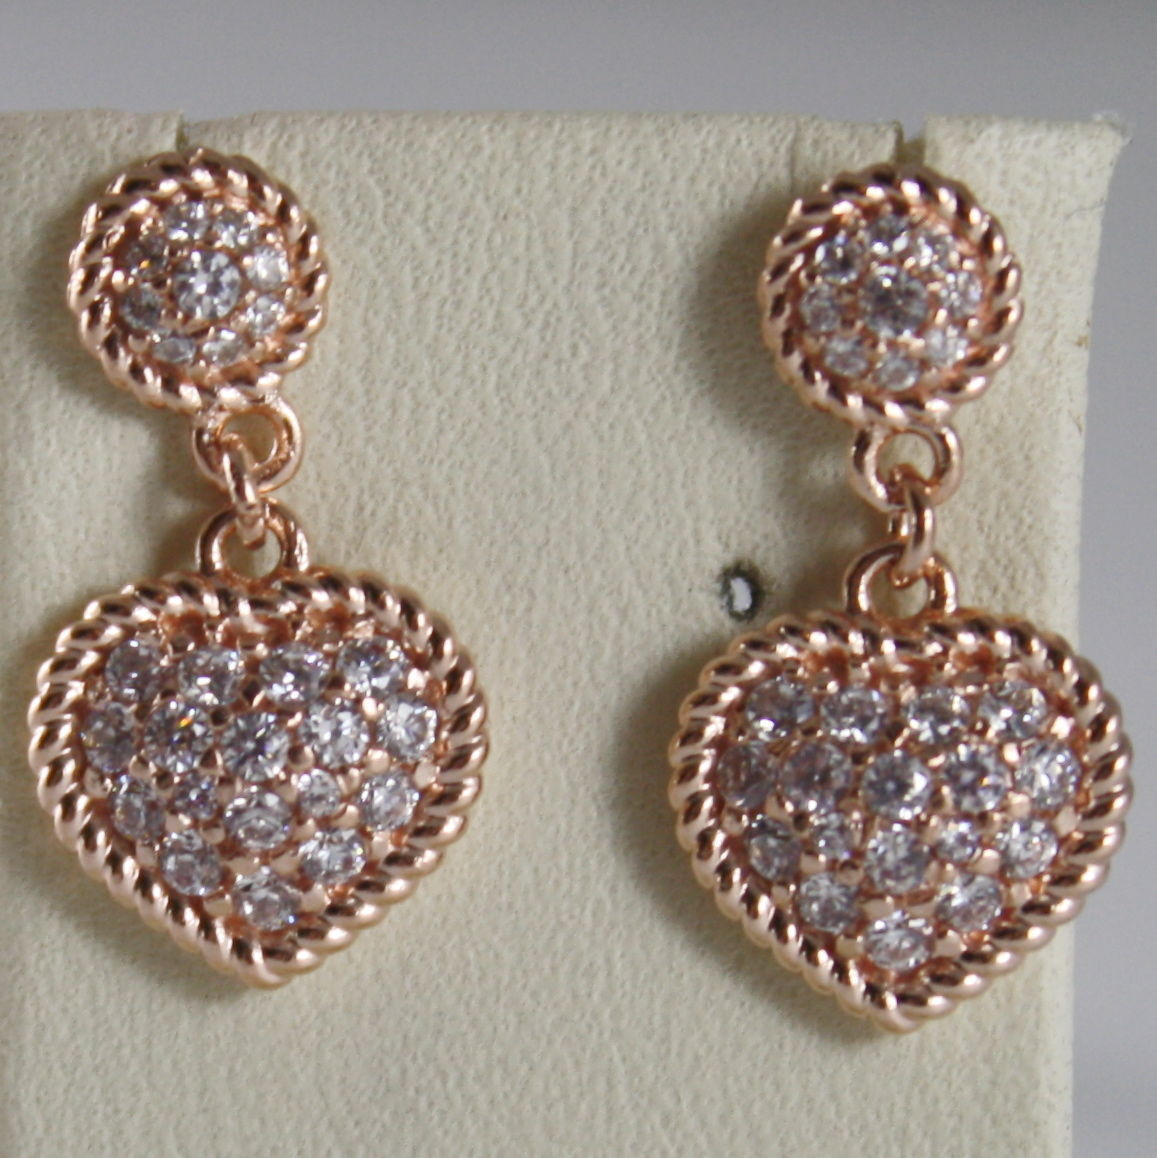 BRONZE EARRINGS, HEART & CUBIC ZIRCONIA B14ORB11, ROSE, BY REBECCA MADE IN ITAL